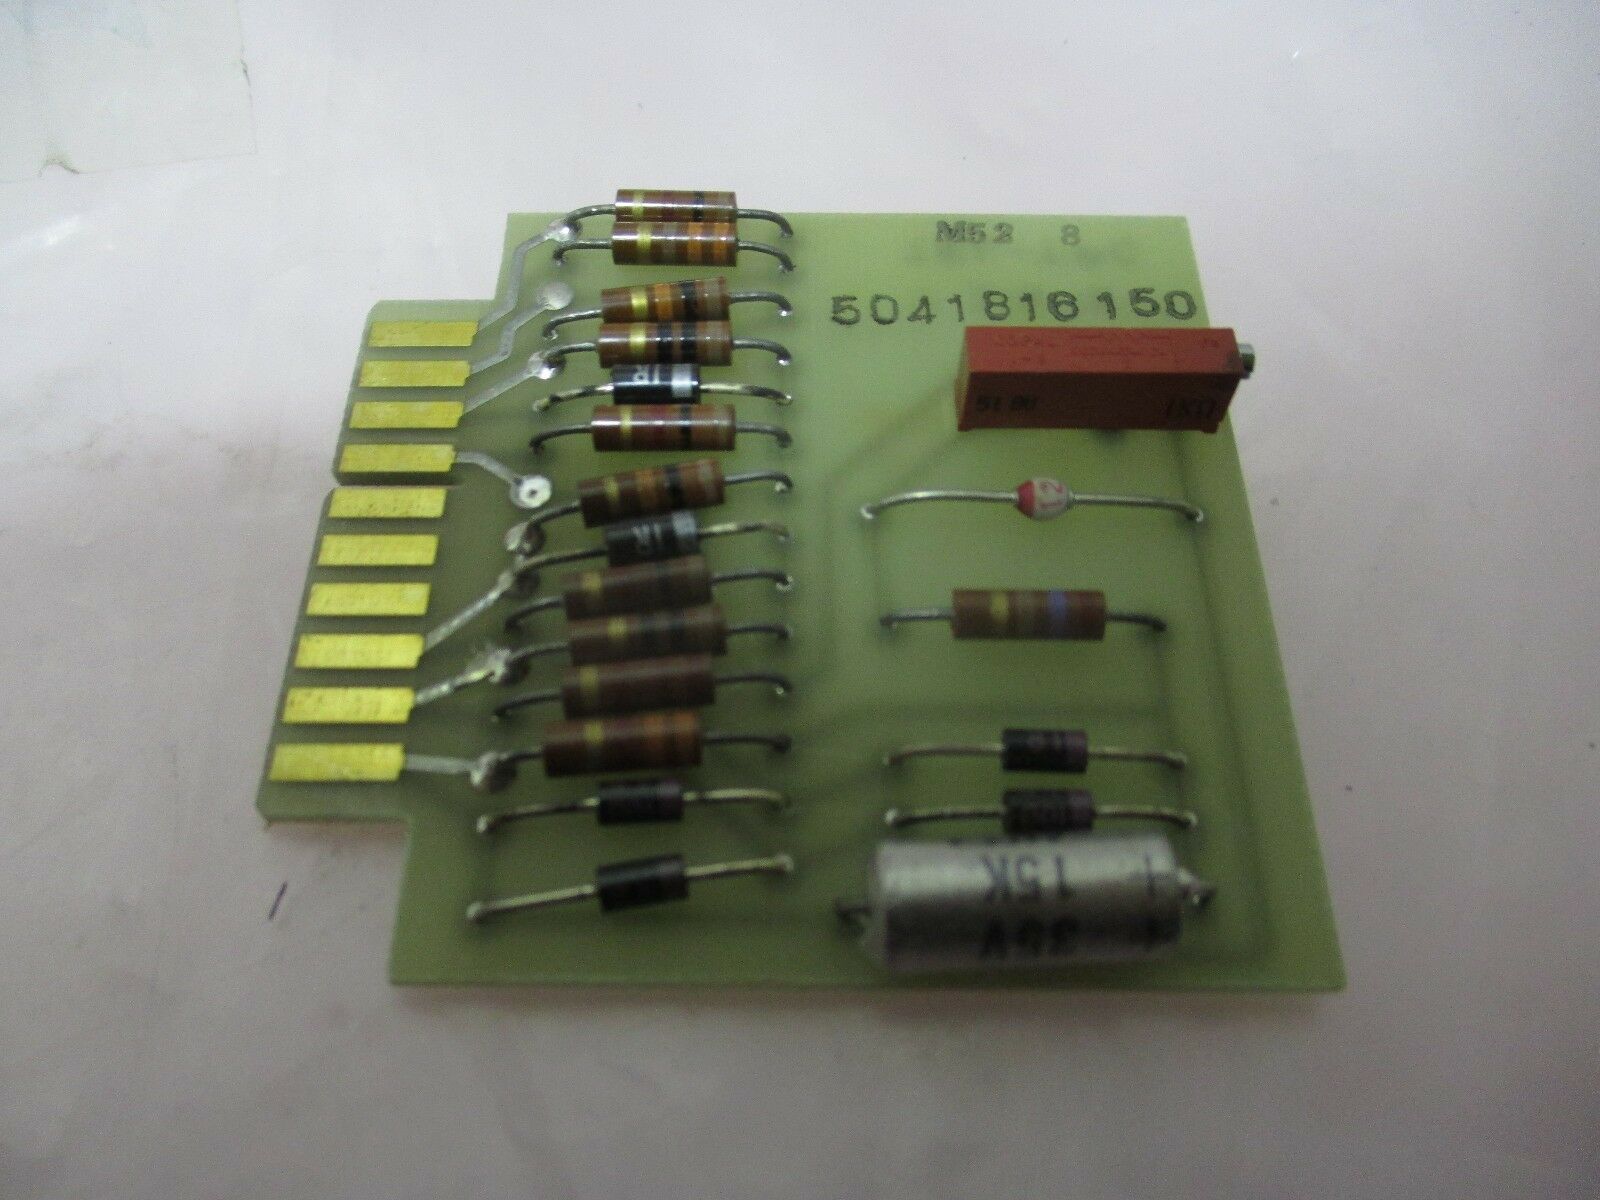 M52-8 PCB for Speed Controller, 5041816150, TEL-TPC, T-319-12, 421215